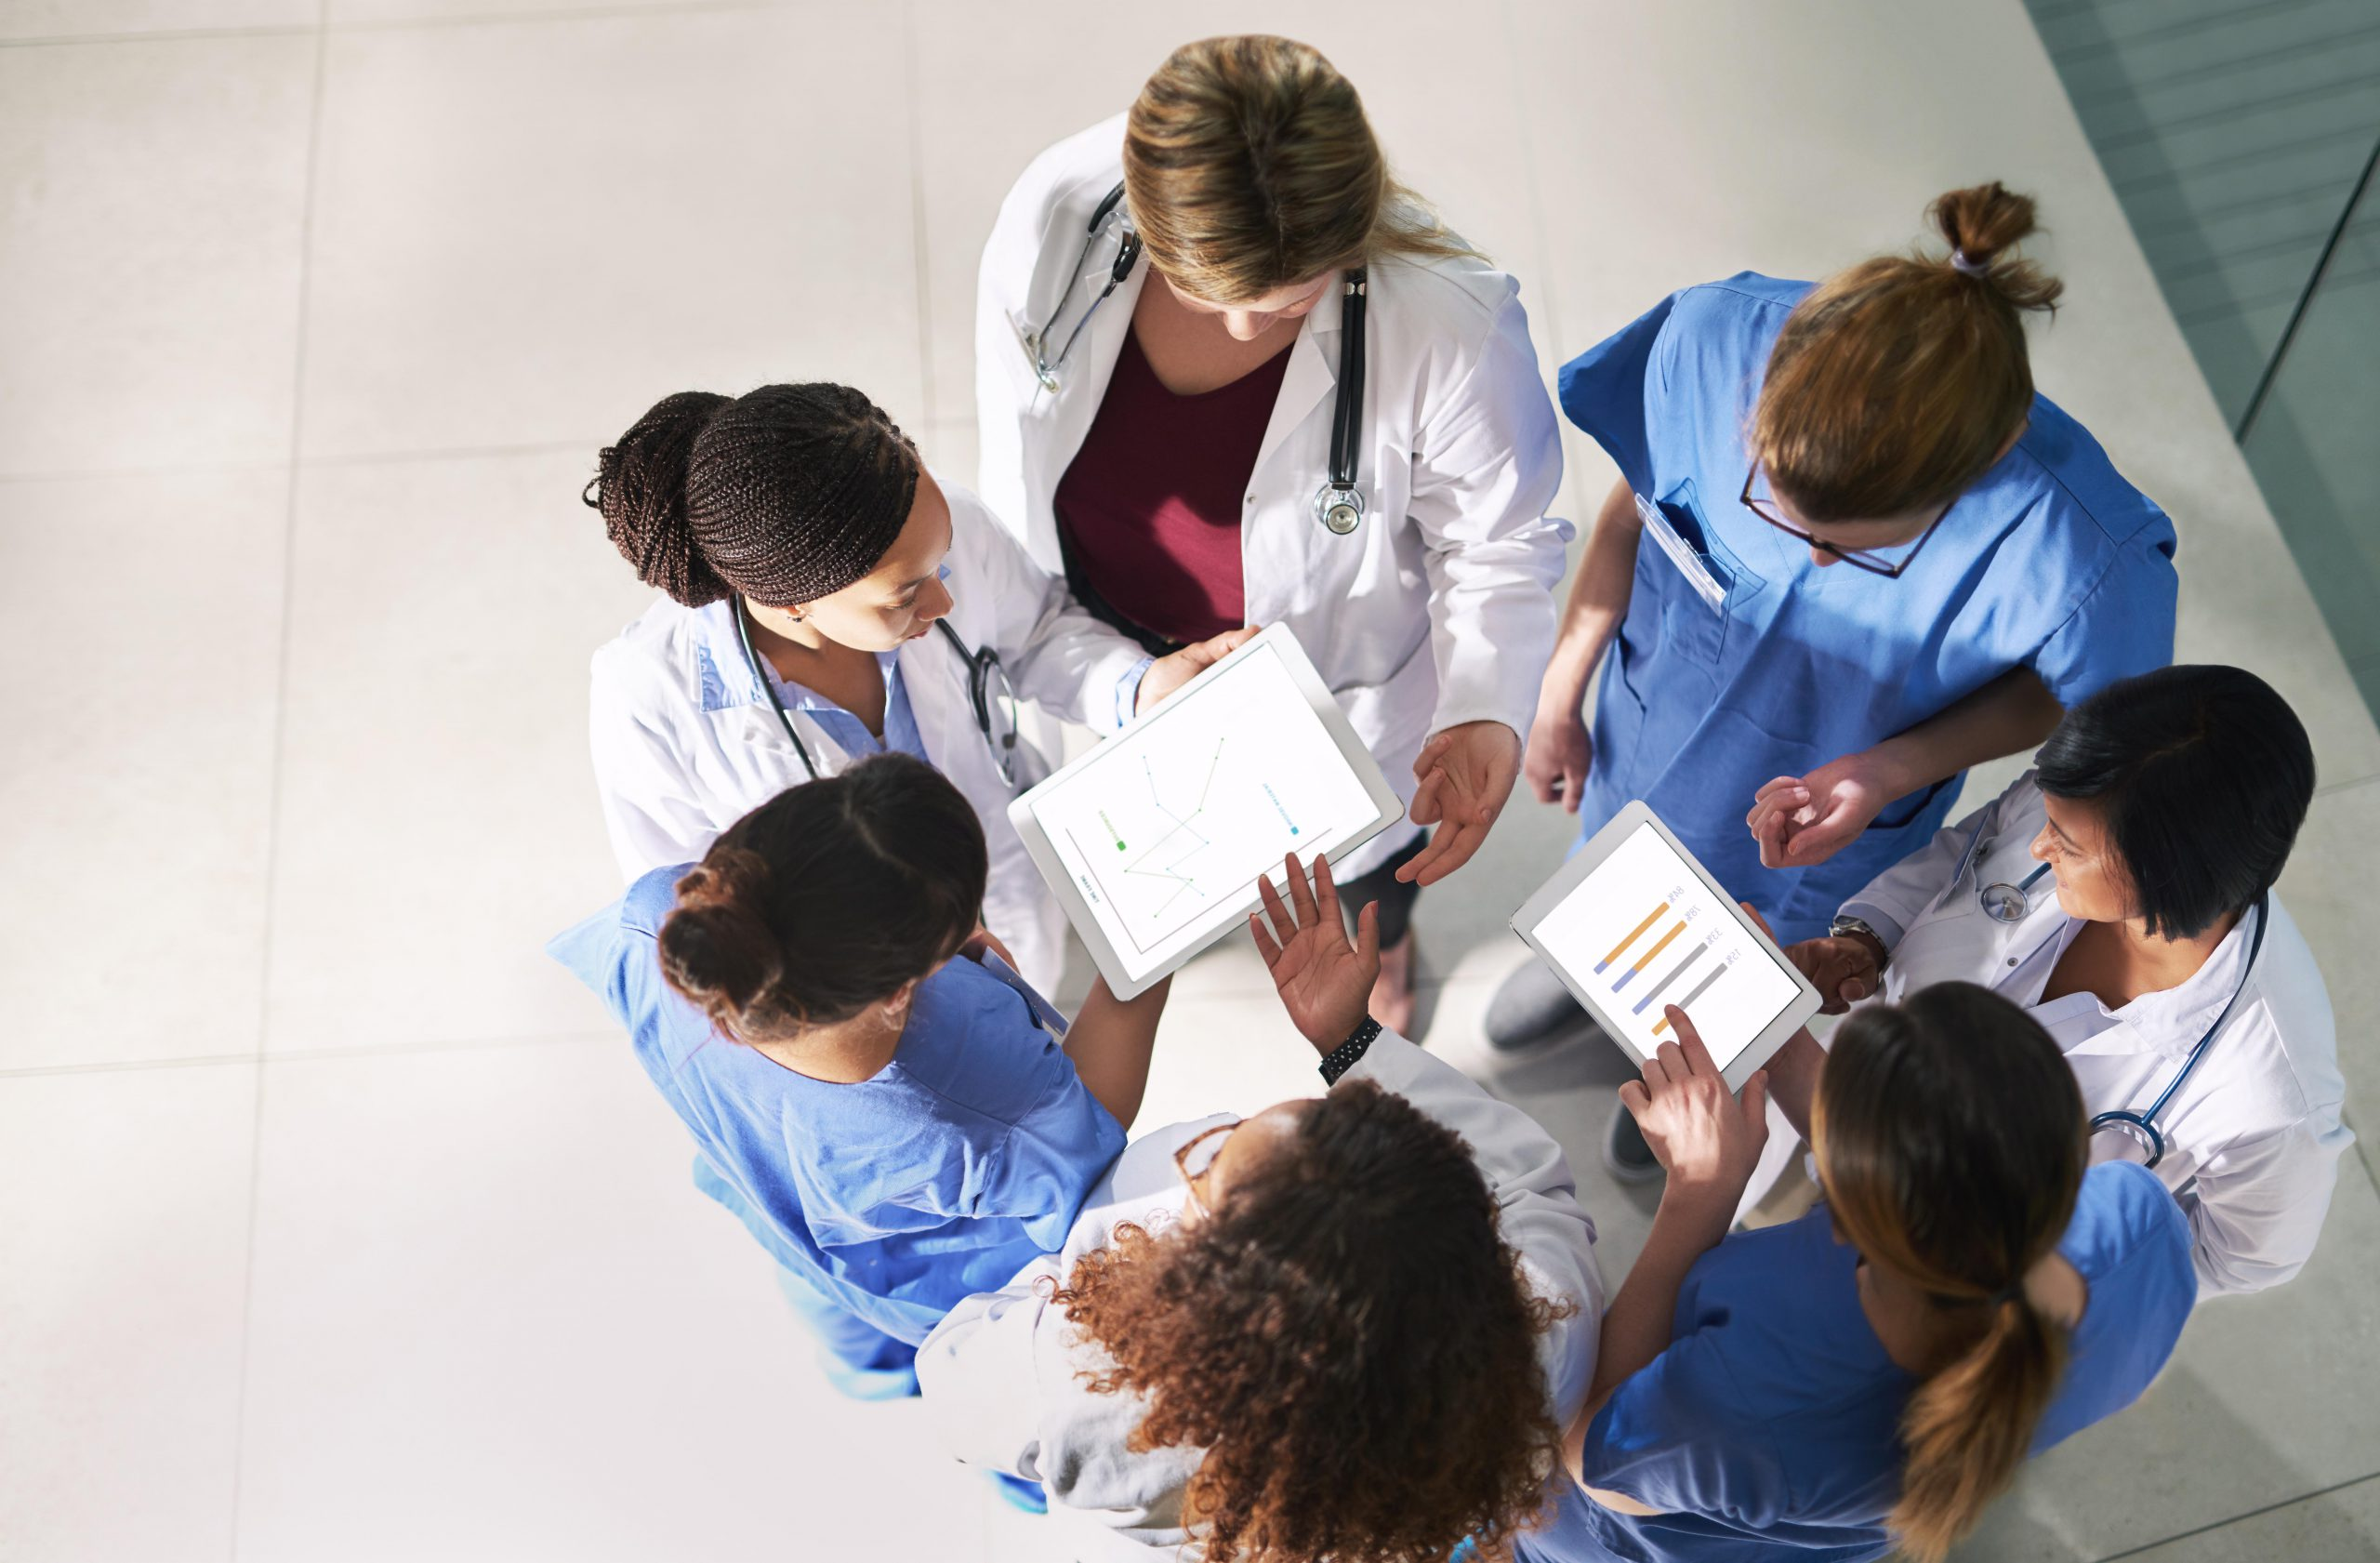 a group of doctors and nurses standing in a circle, discussing their notes